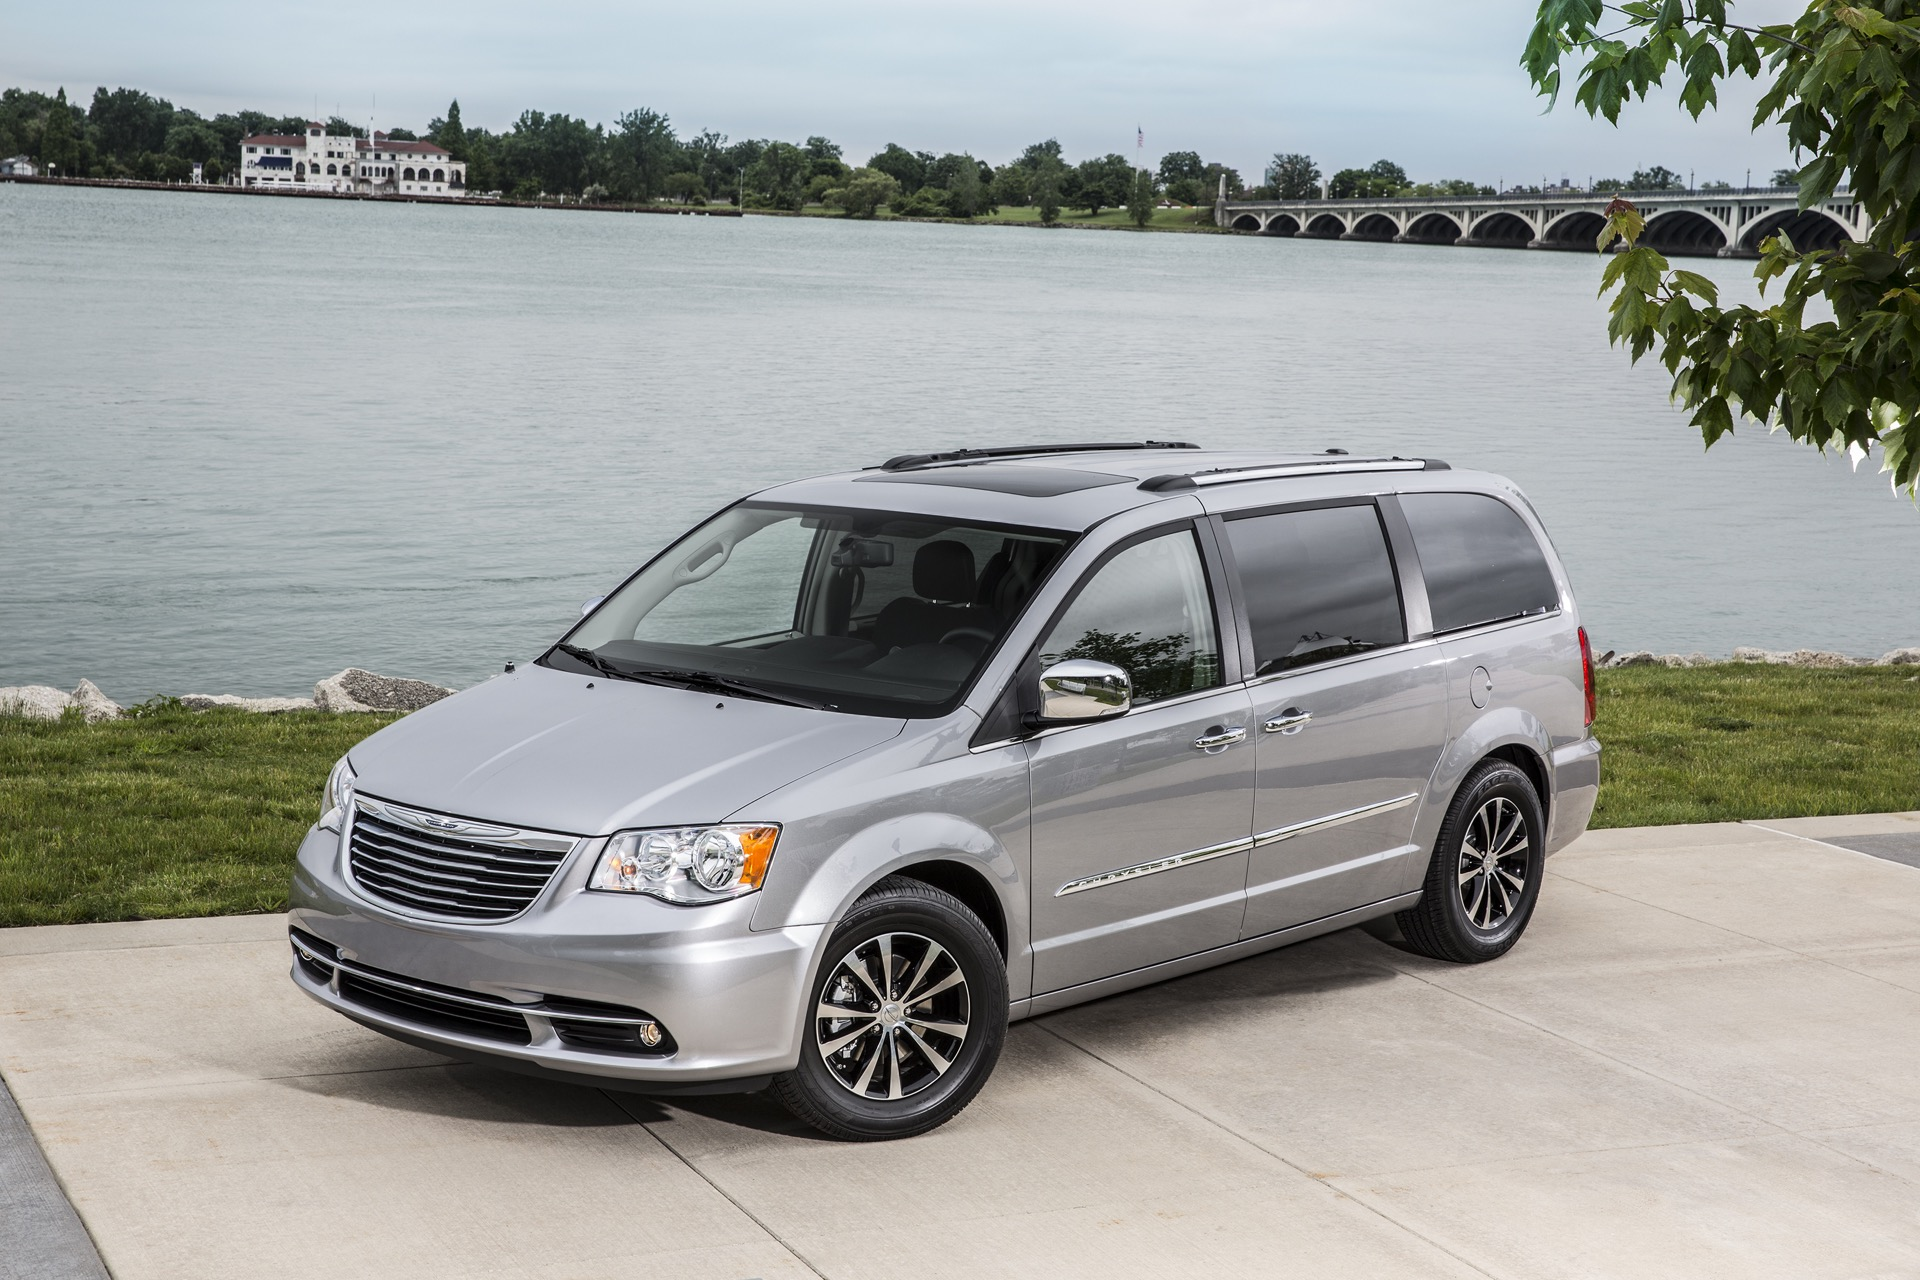 2016 chrysler town country review ratings specs prices and photos the car connection. Black Bedroom Furniture Sets. Home Design Ideas